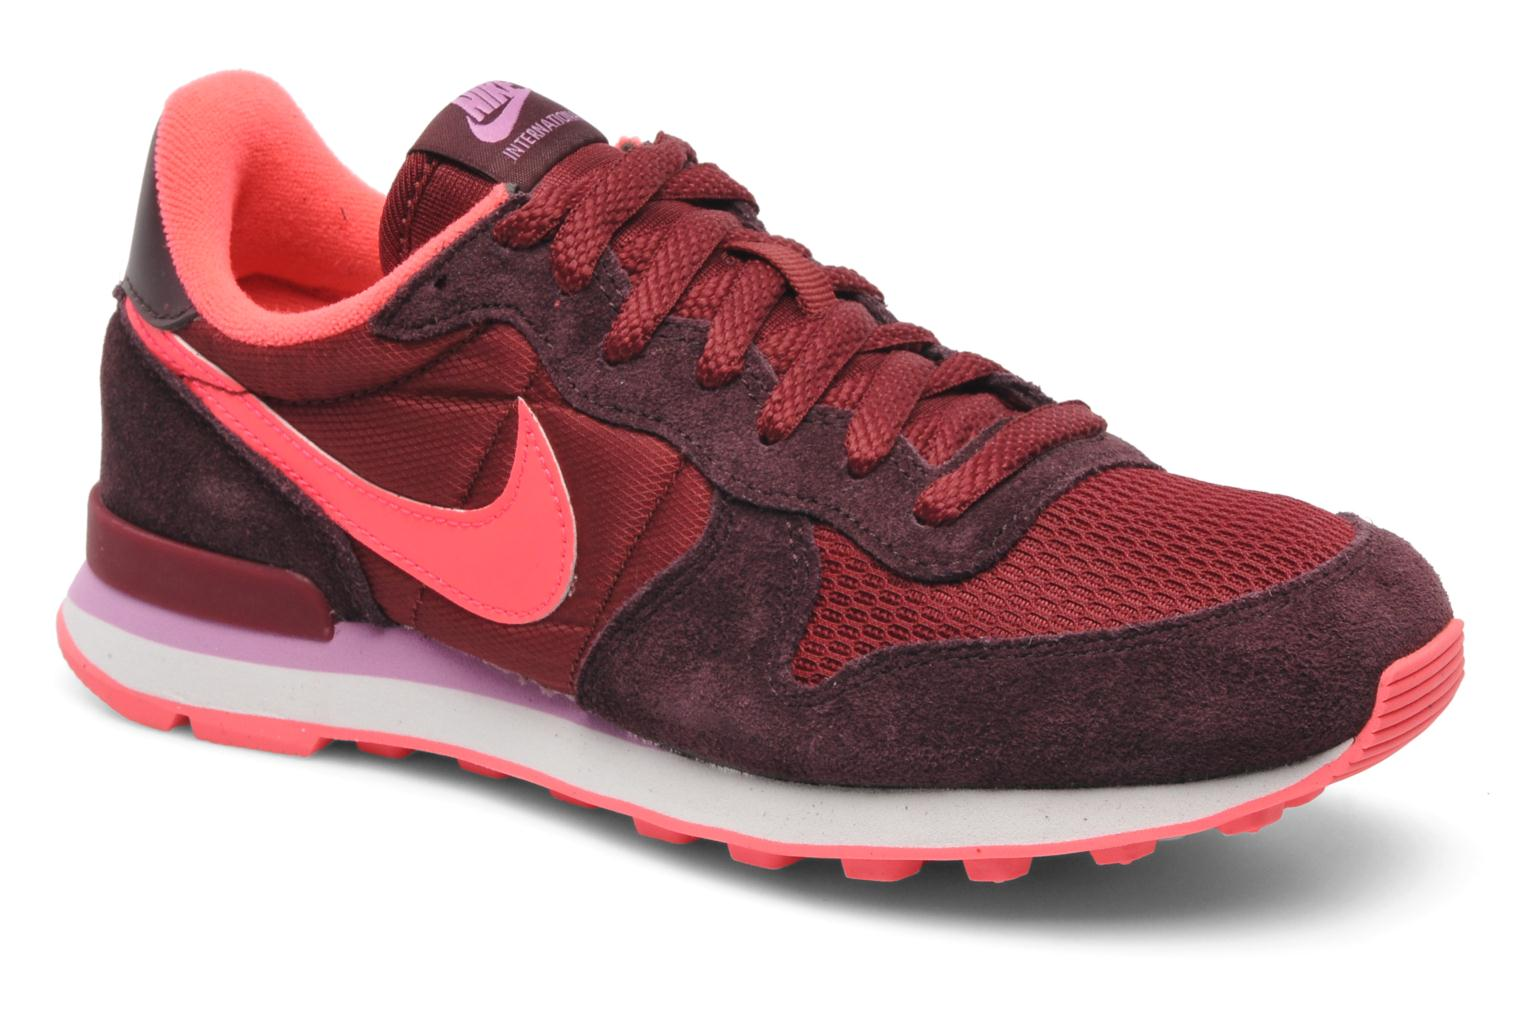 nike internationalist bordeaux,kaufen mzn4b e2gupg Sportschuhe Nike  Internationalist Damen Tiefe Gra 47e6578567